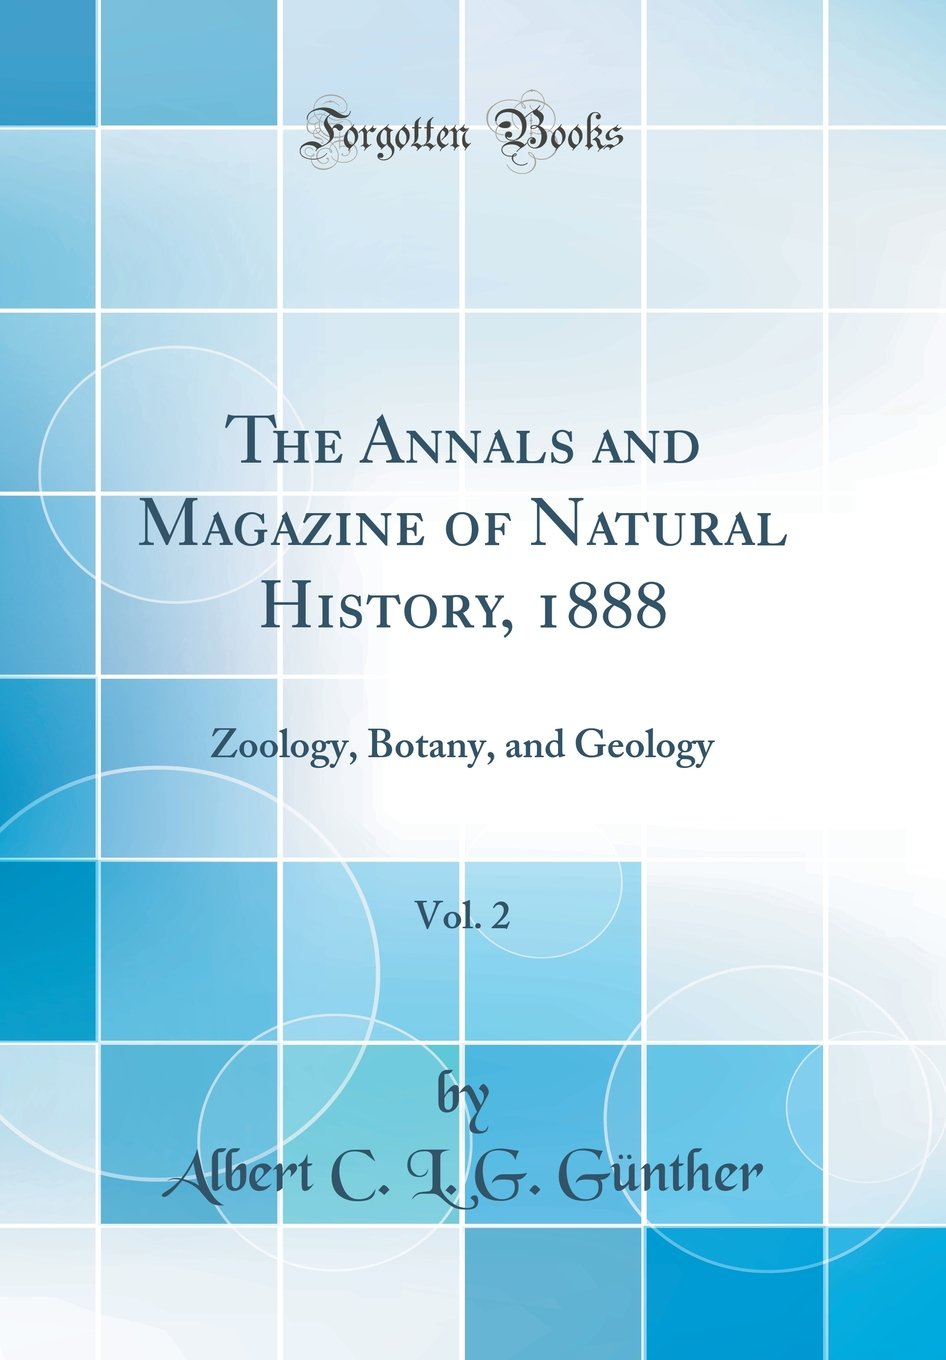 Download The Annals and Magazine of Natural History, 1888, Vol. 2: Zoology, Botany, and Geology (Classic Reprint) pdf